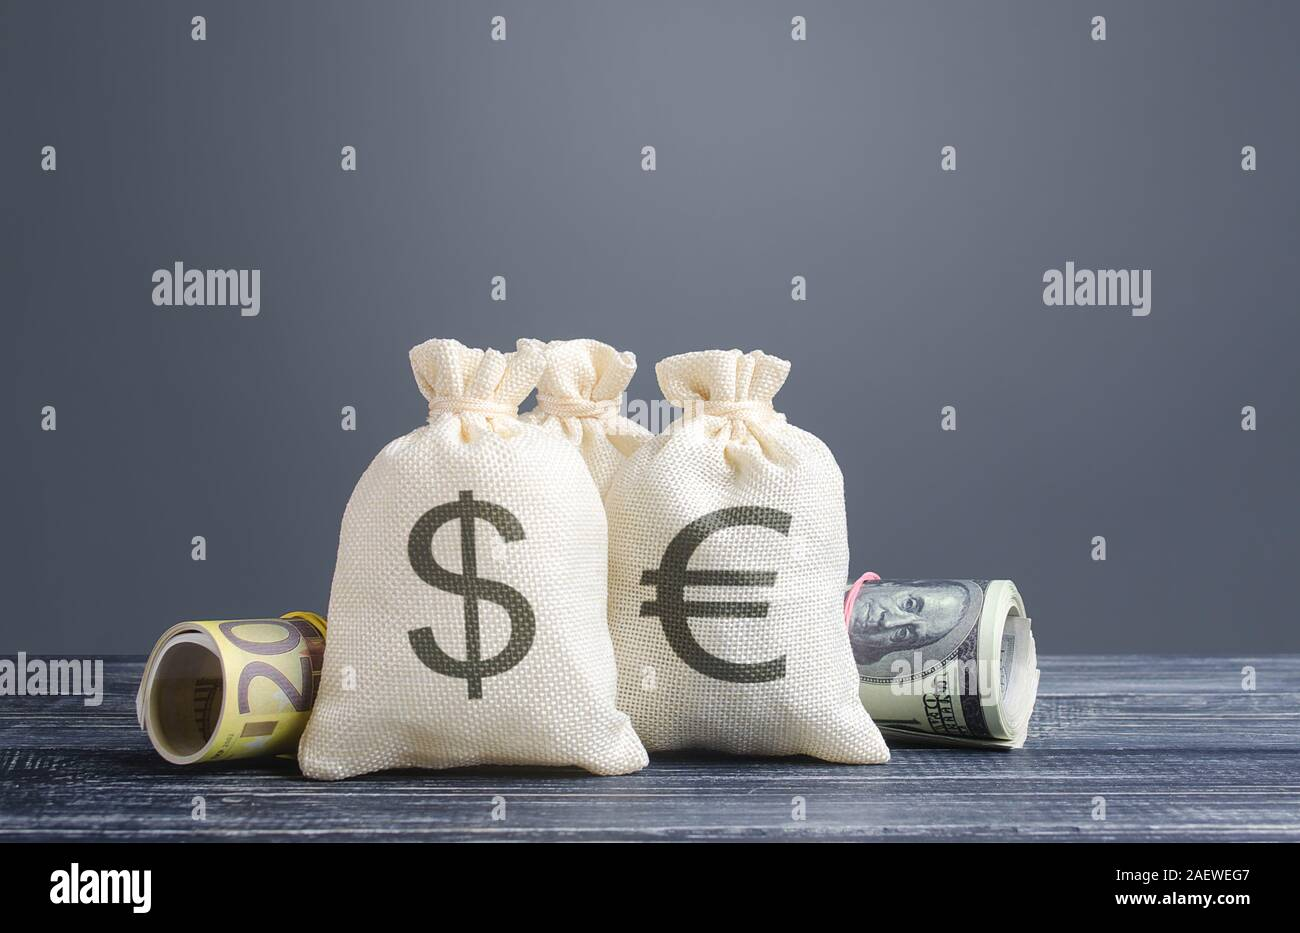 Money bags and world currencies. Capital investment, savings. Economics, lending business. Profit income, dividends payouts. Crowdfunding startups inv Stock Photo